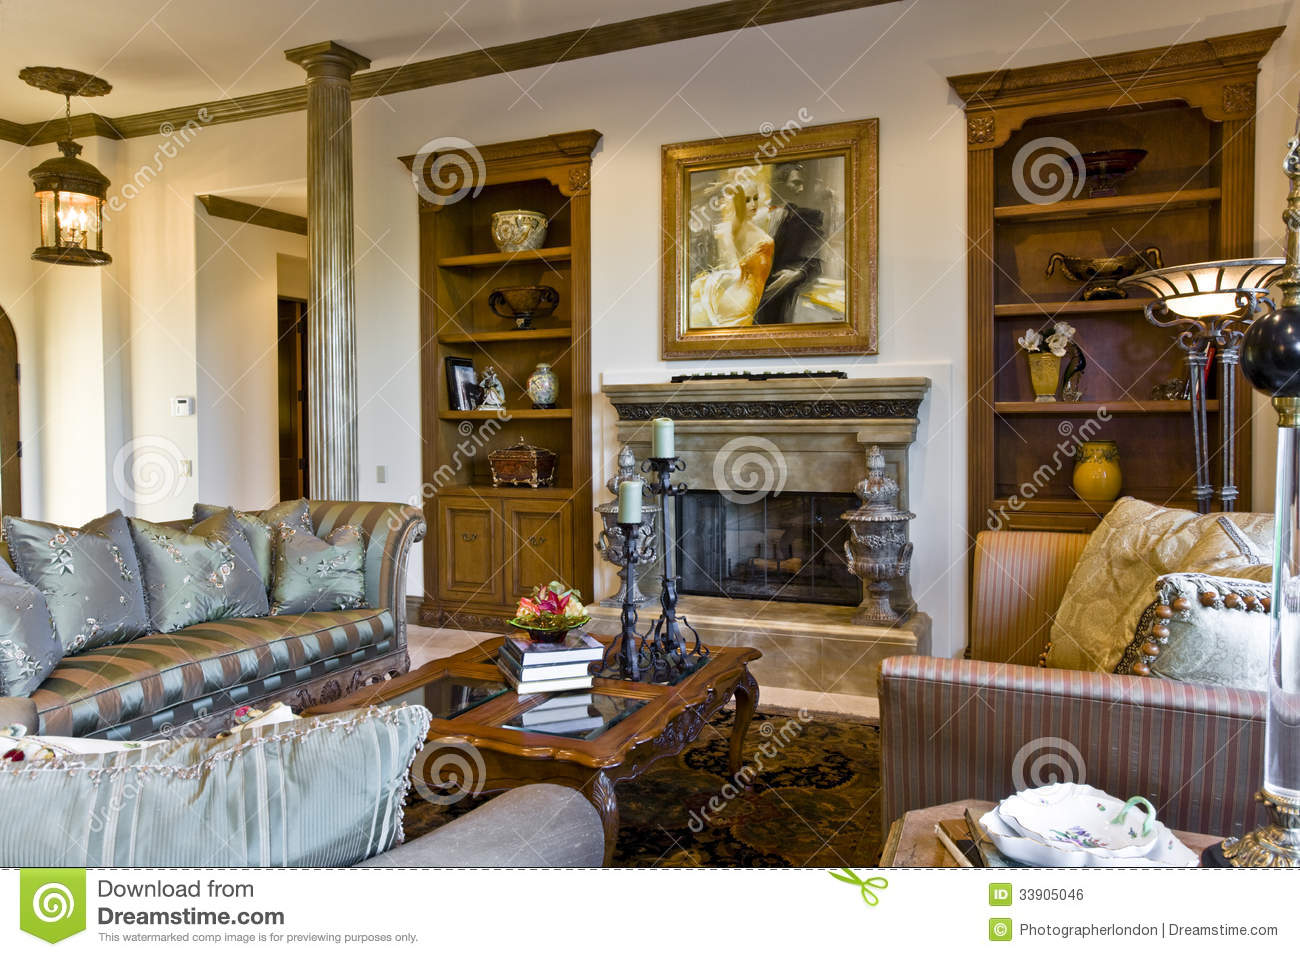 old style living room - photo #37